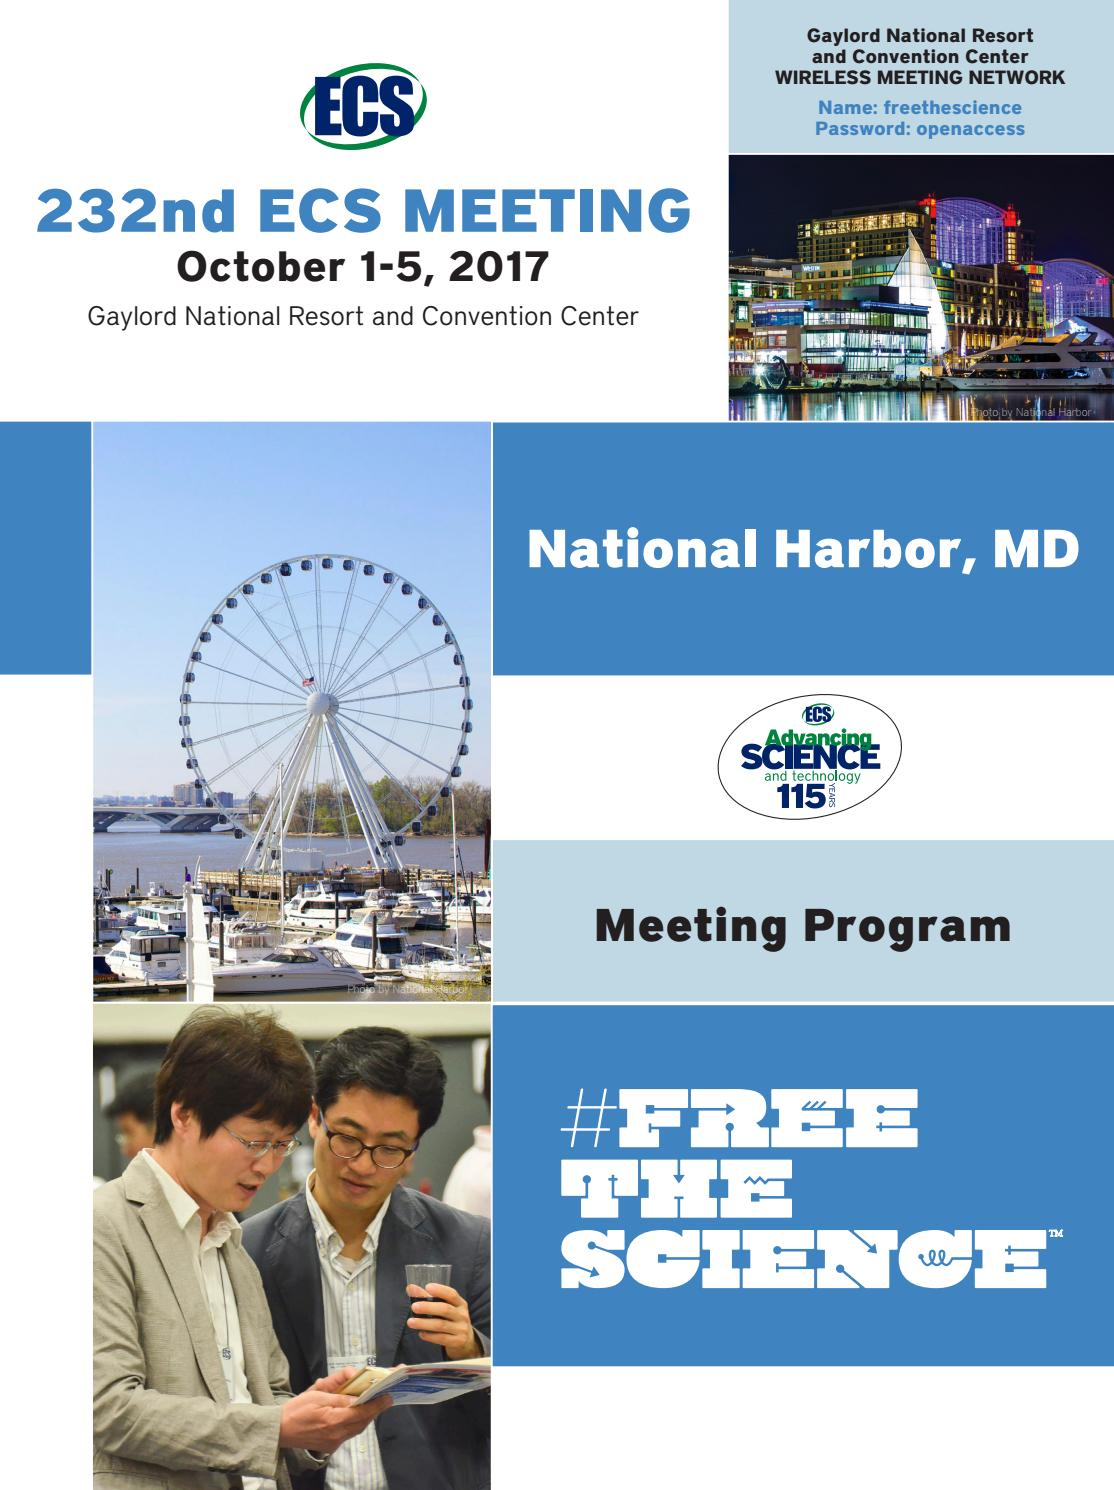 232nd ECS Meeting, National Harbor, MD by The